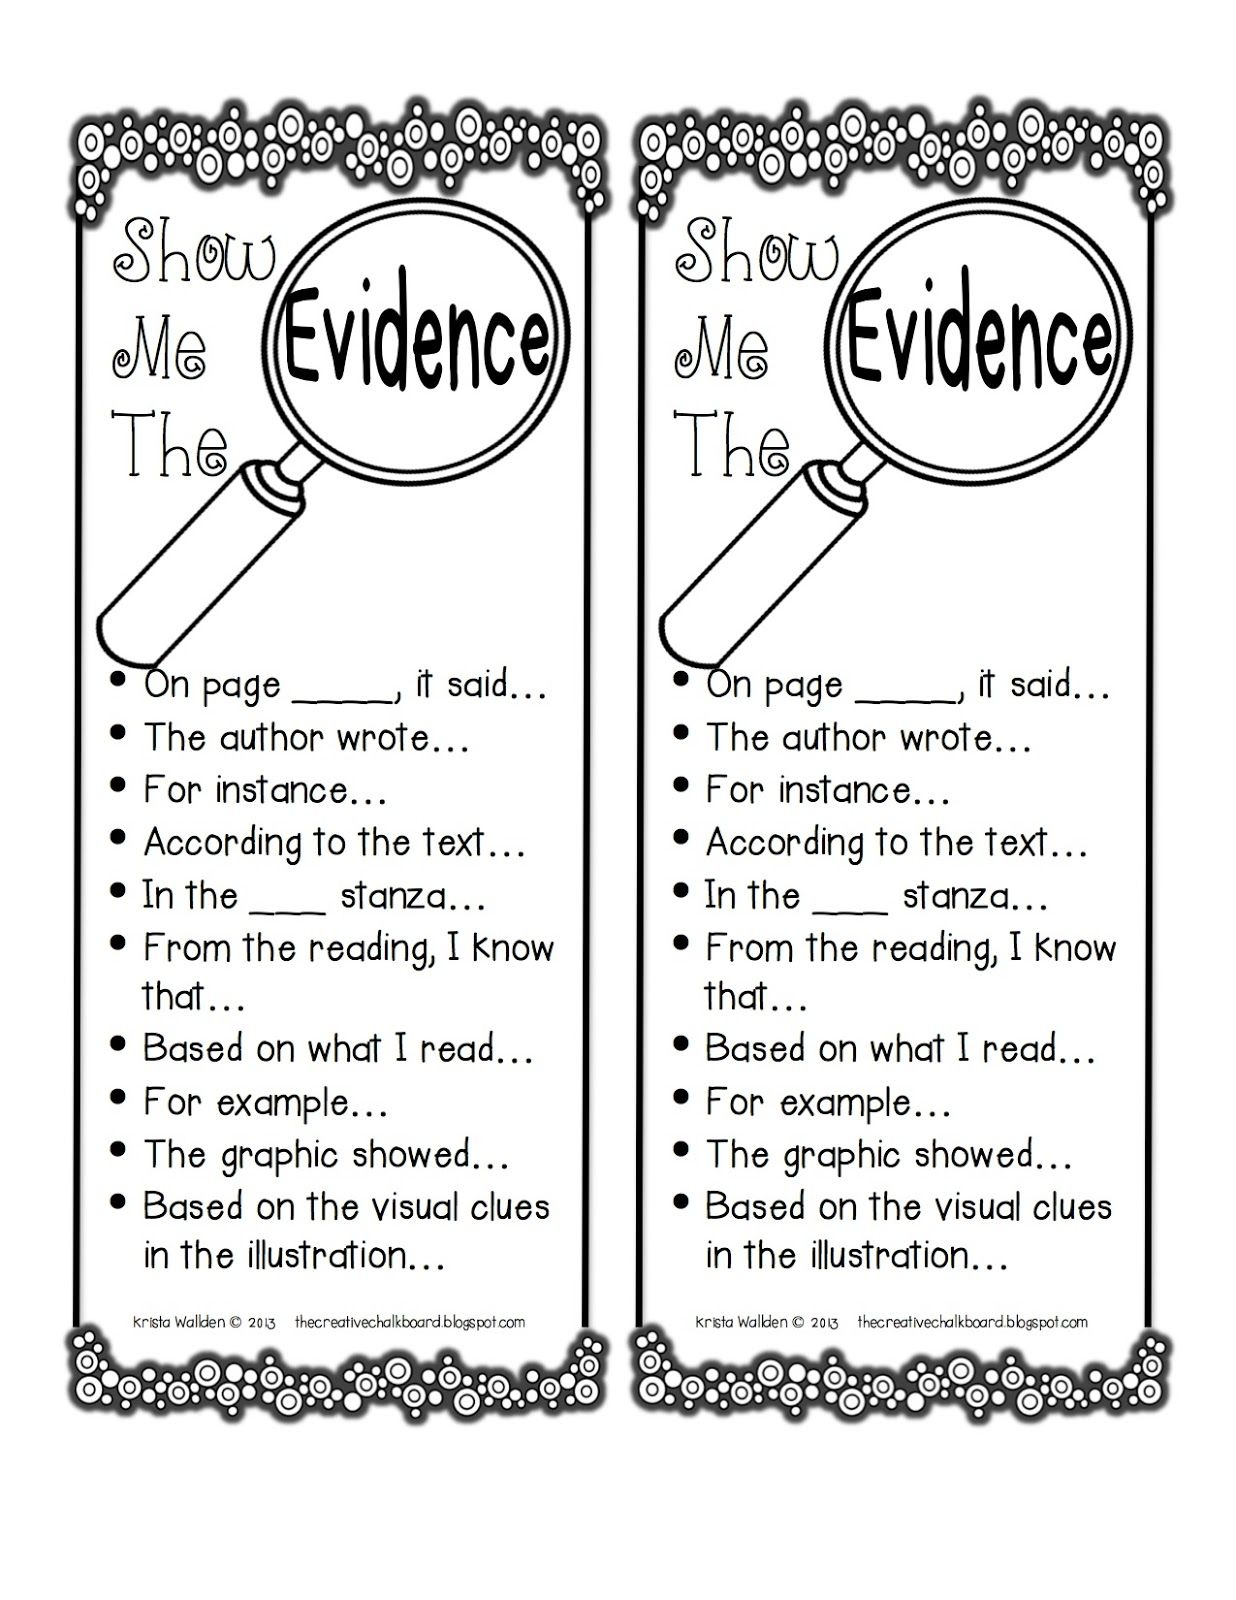 Love this - this offers students various ways to incorporate their evidence! I will laminate one for each student!